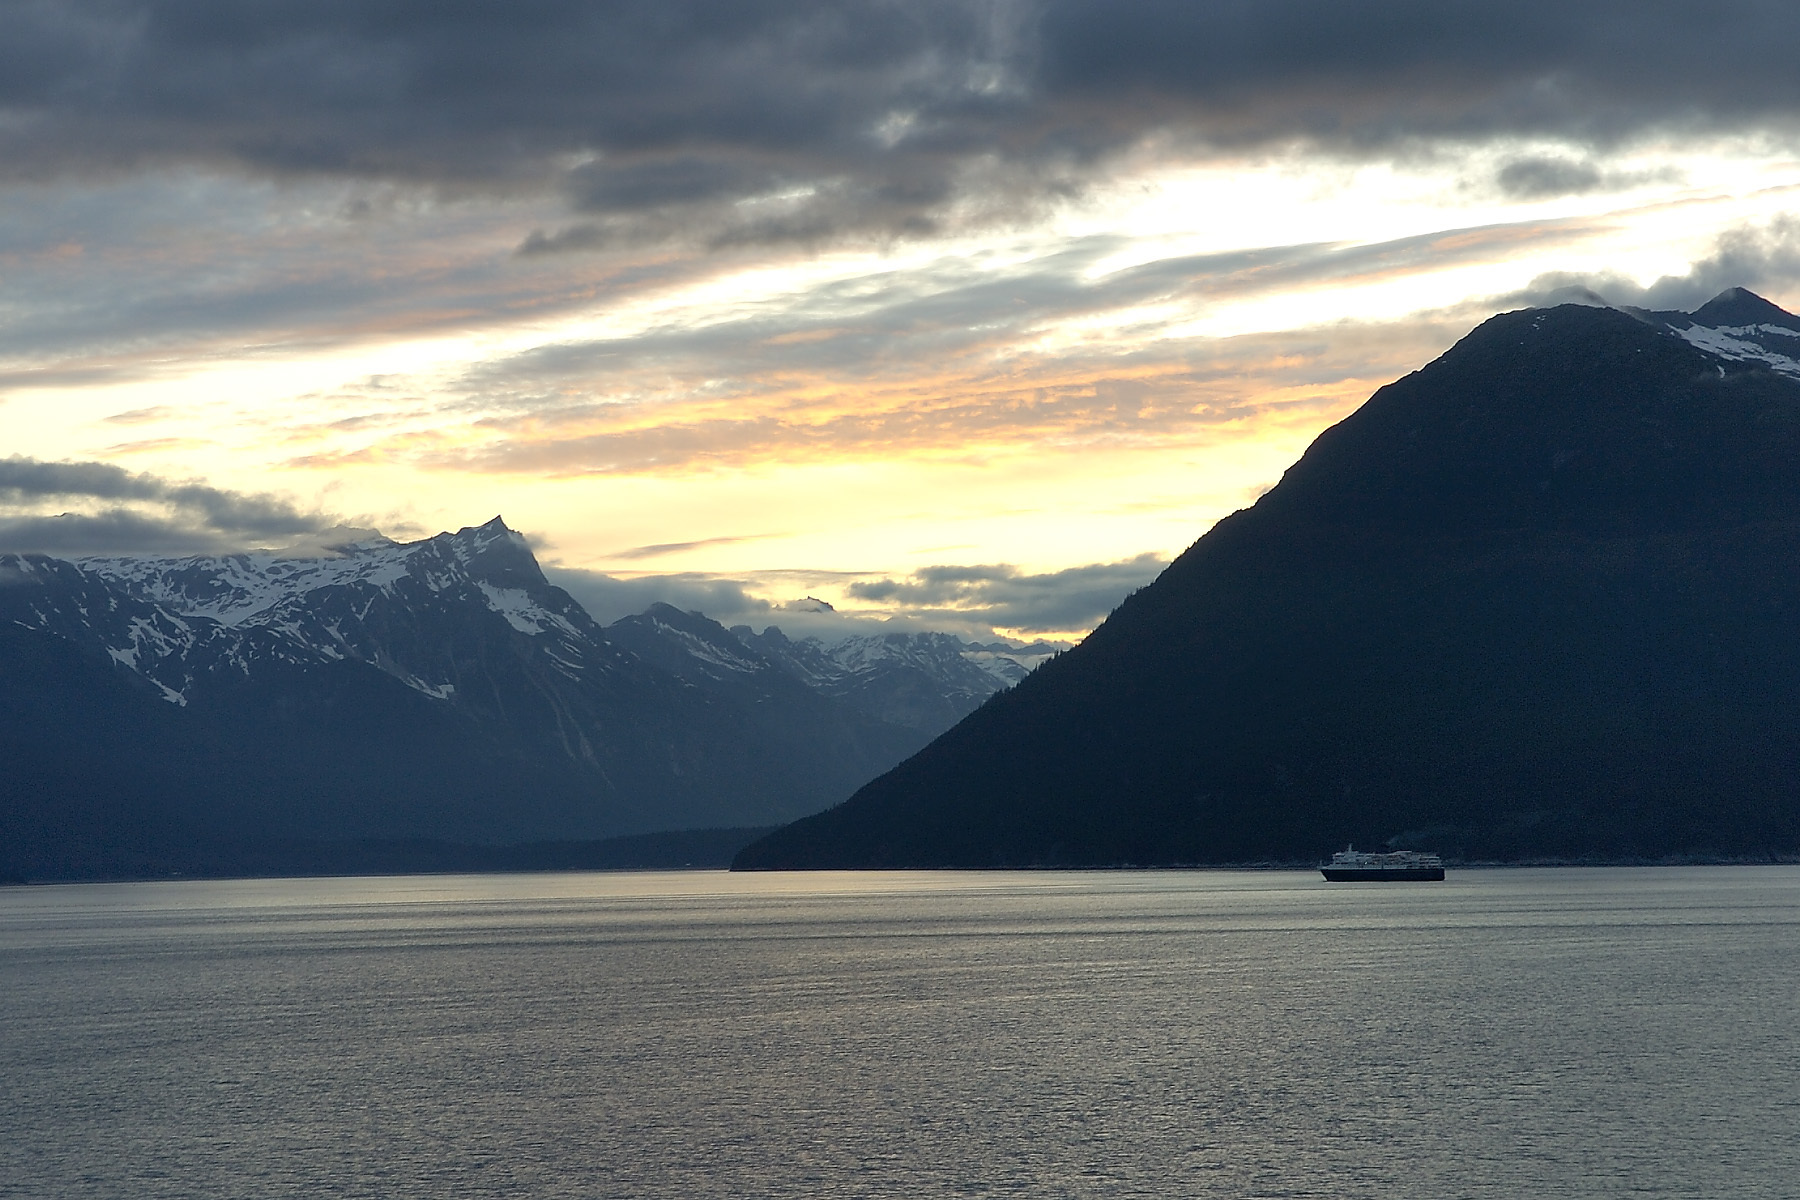 The view leaving Skagway